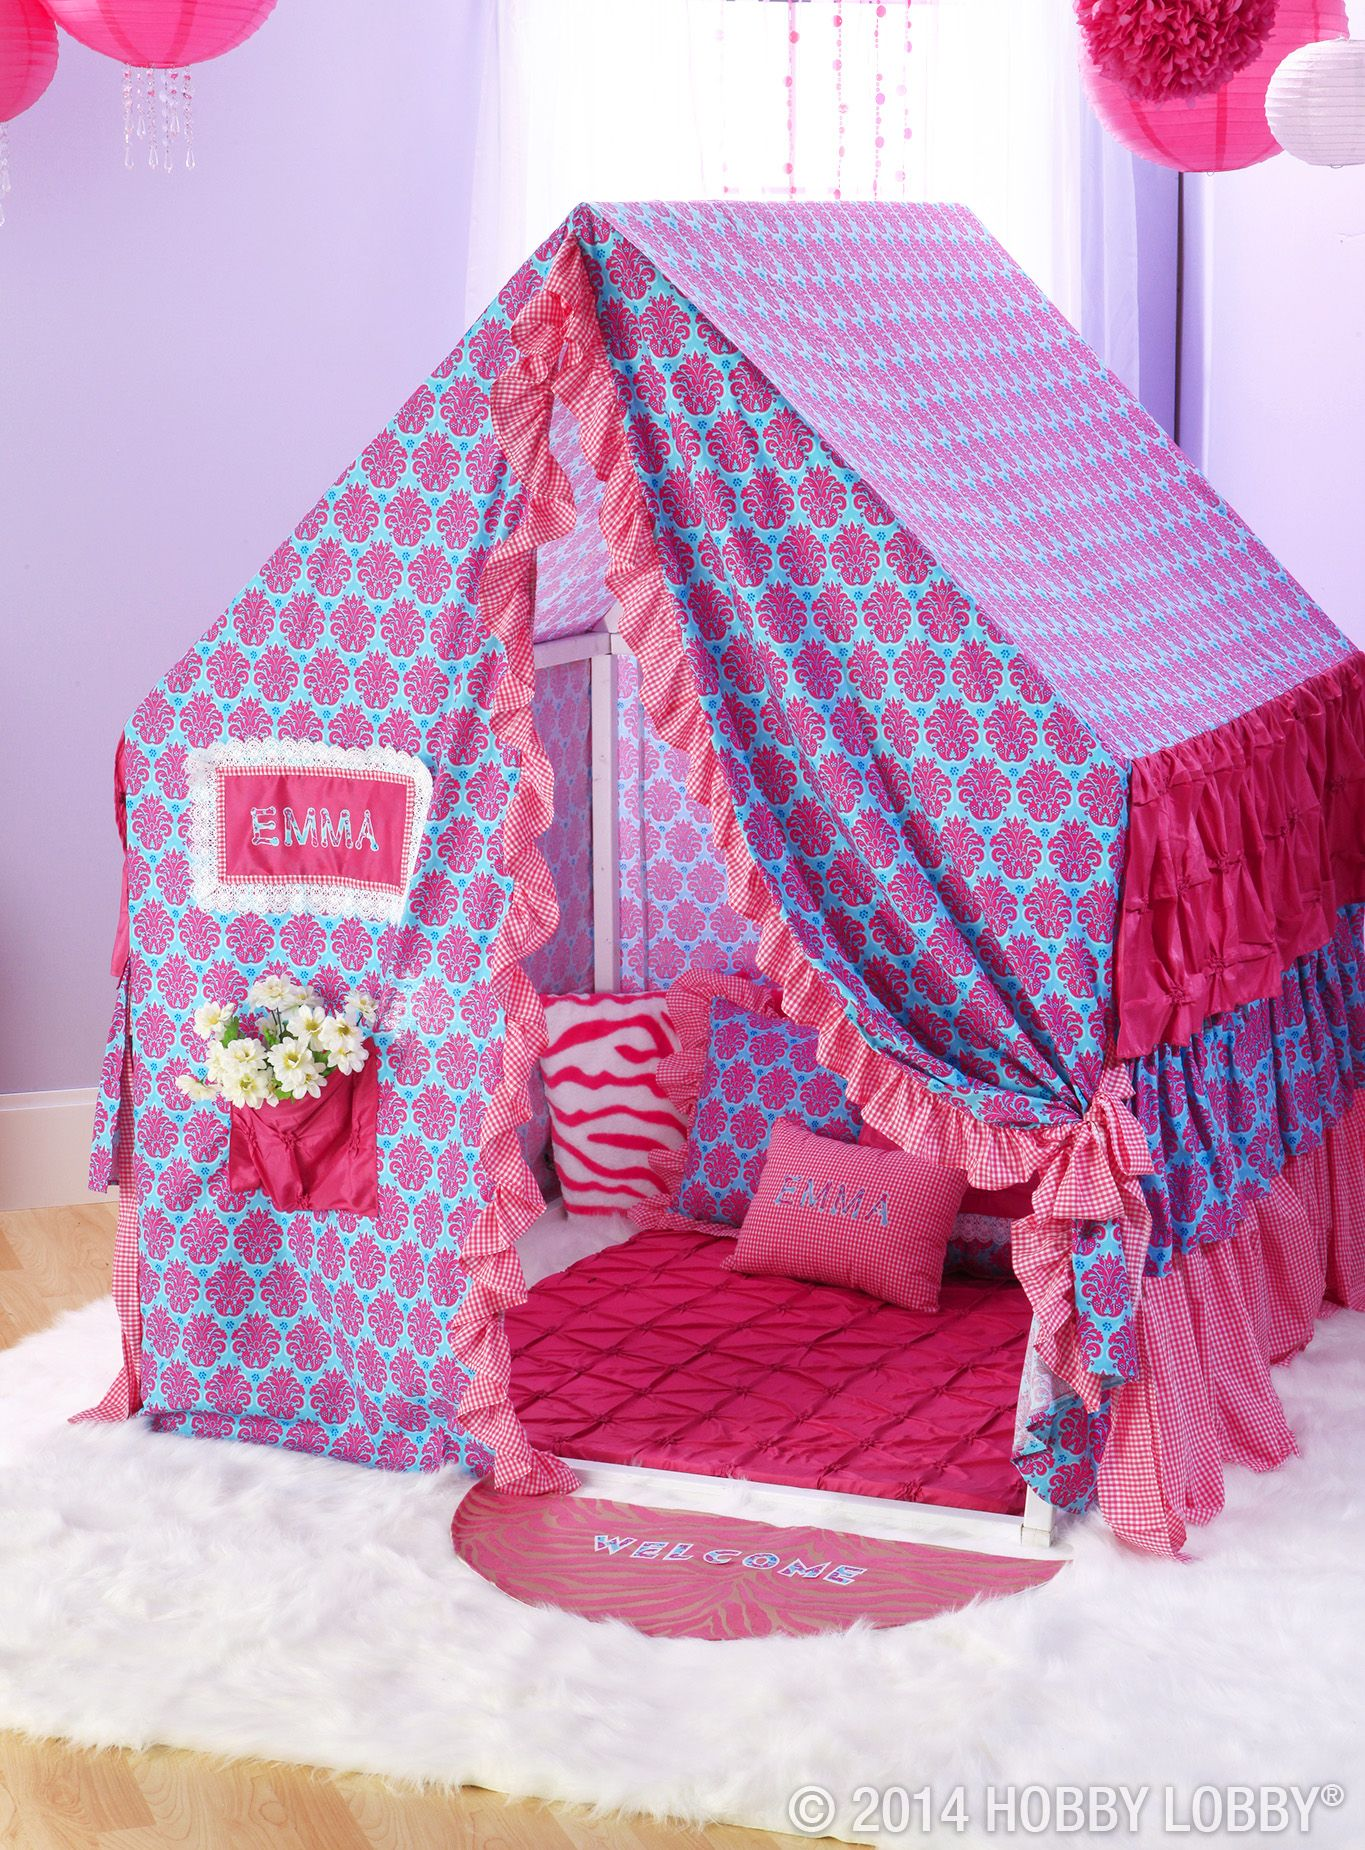 This One S For The Girls Kids Room Kids Tents Play Tent